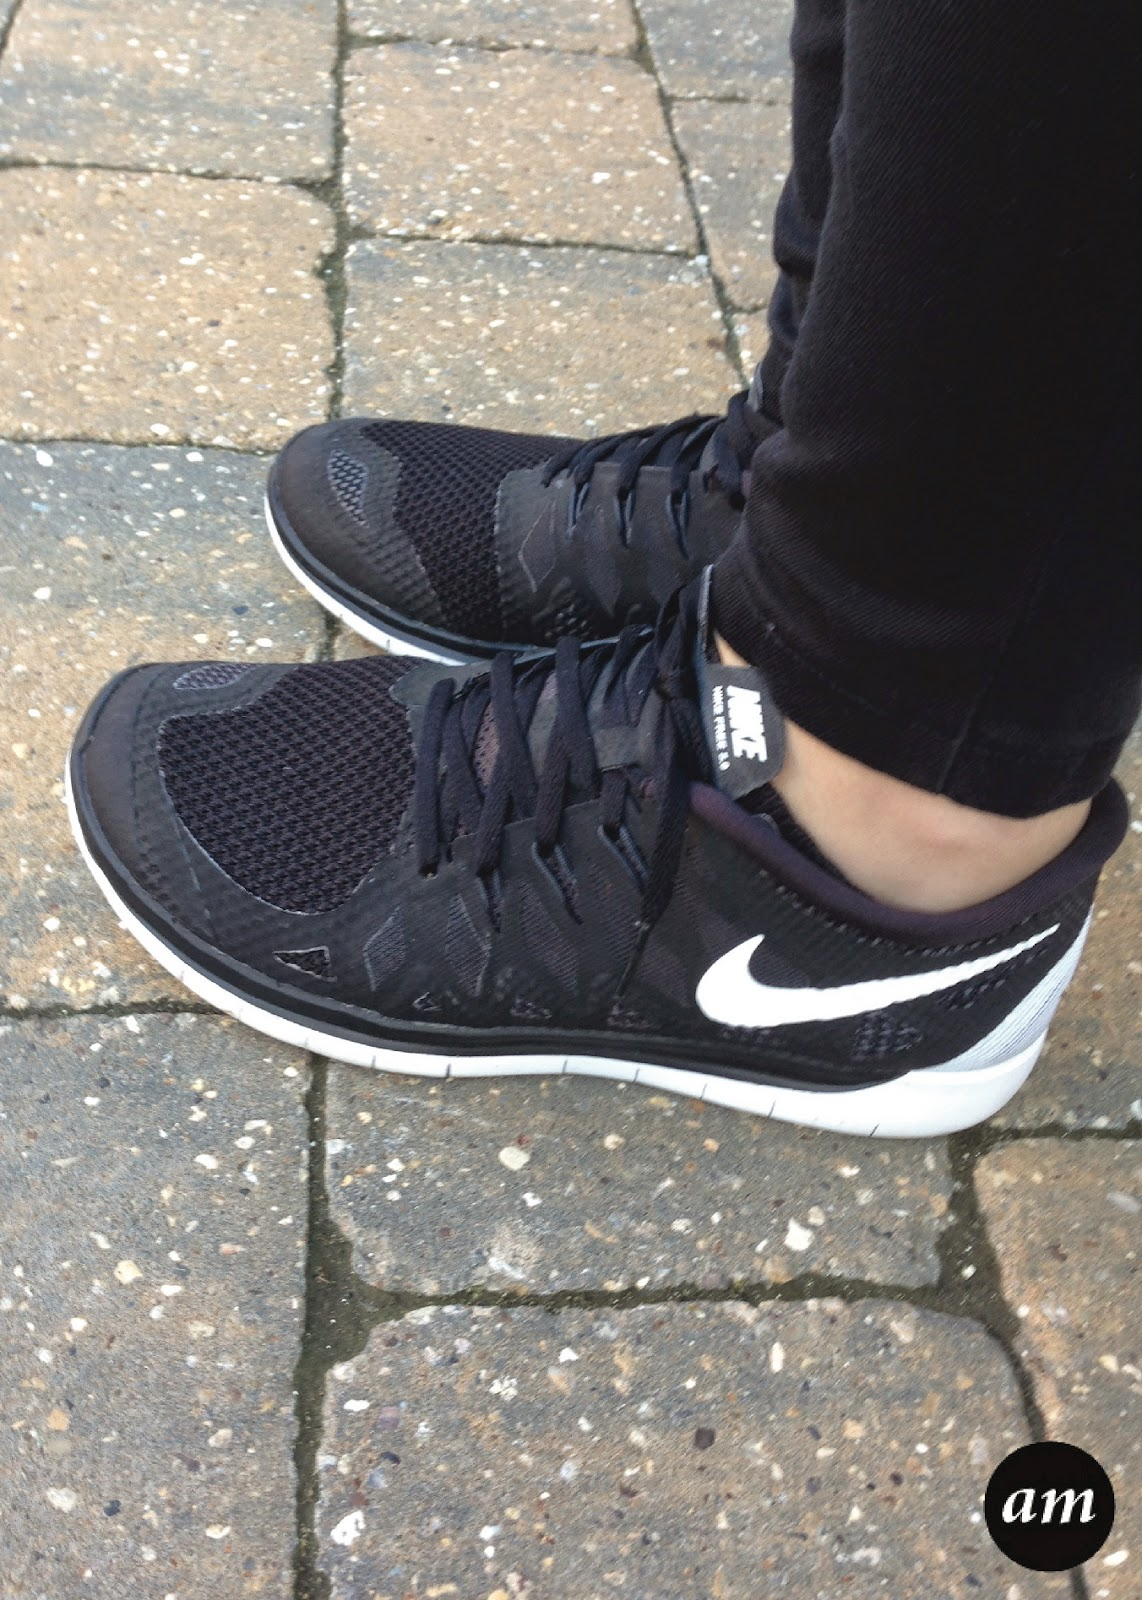 01a612ab509 Nike Free Run 5.0 Trainer Review